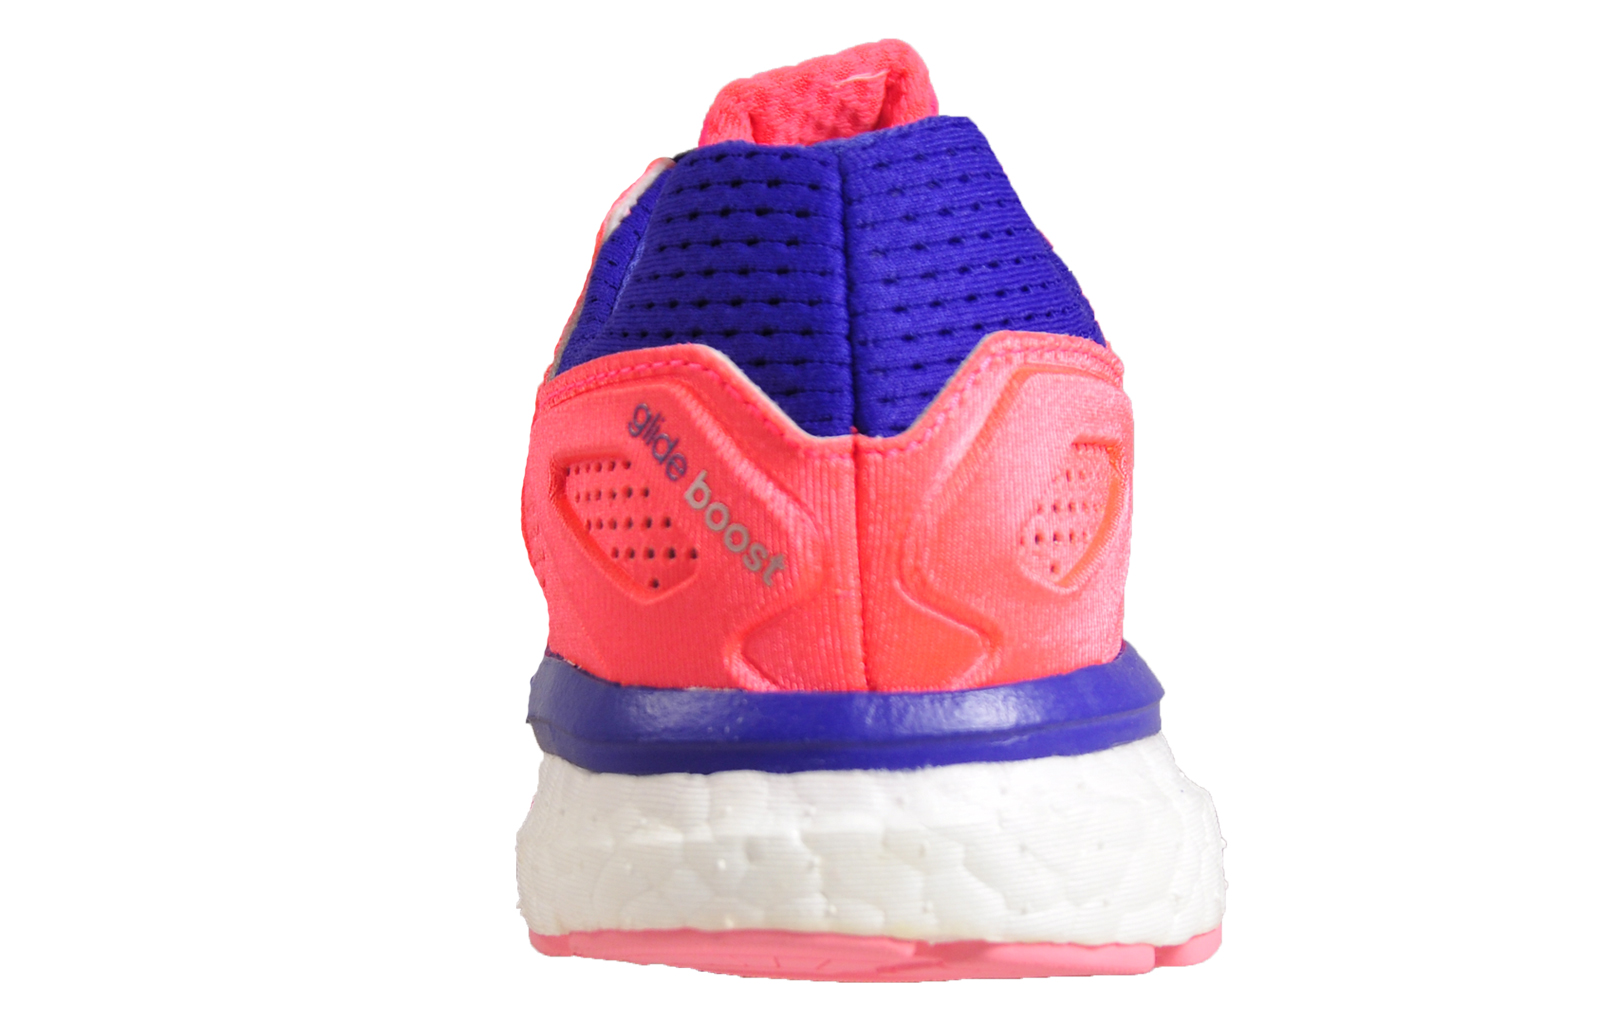 san francisco 72984 2d455 Adidas Supernova Glide Boost 7 Women s Premium Running Shoes Fitness Gym  Trainers